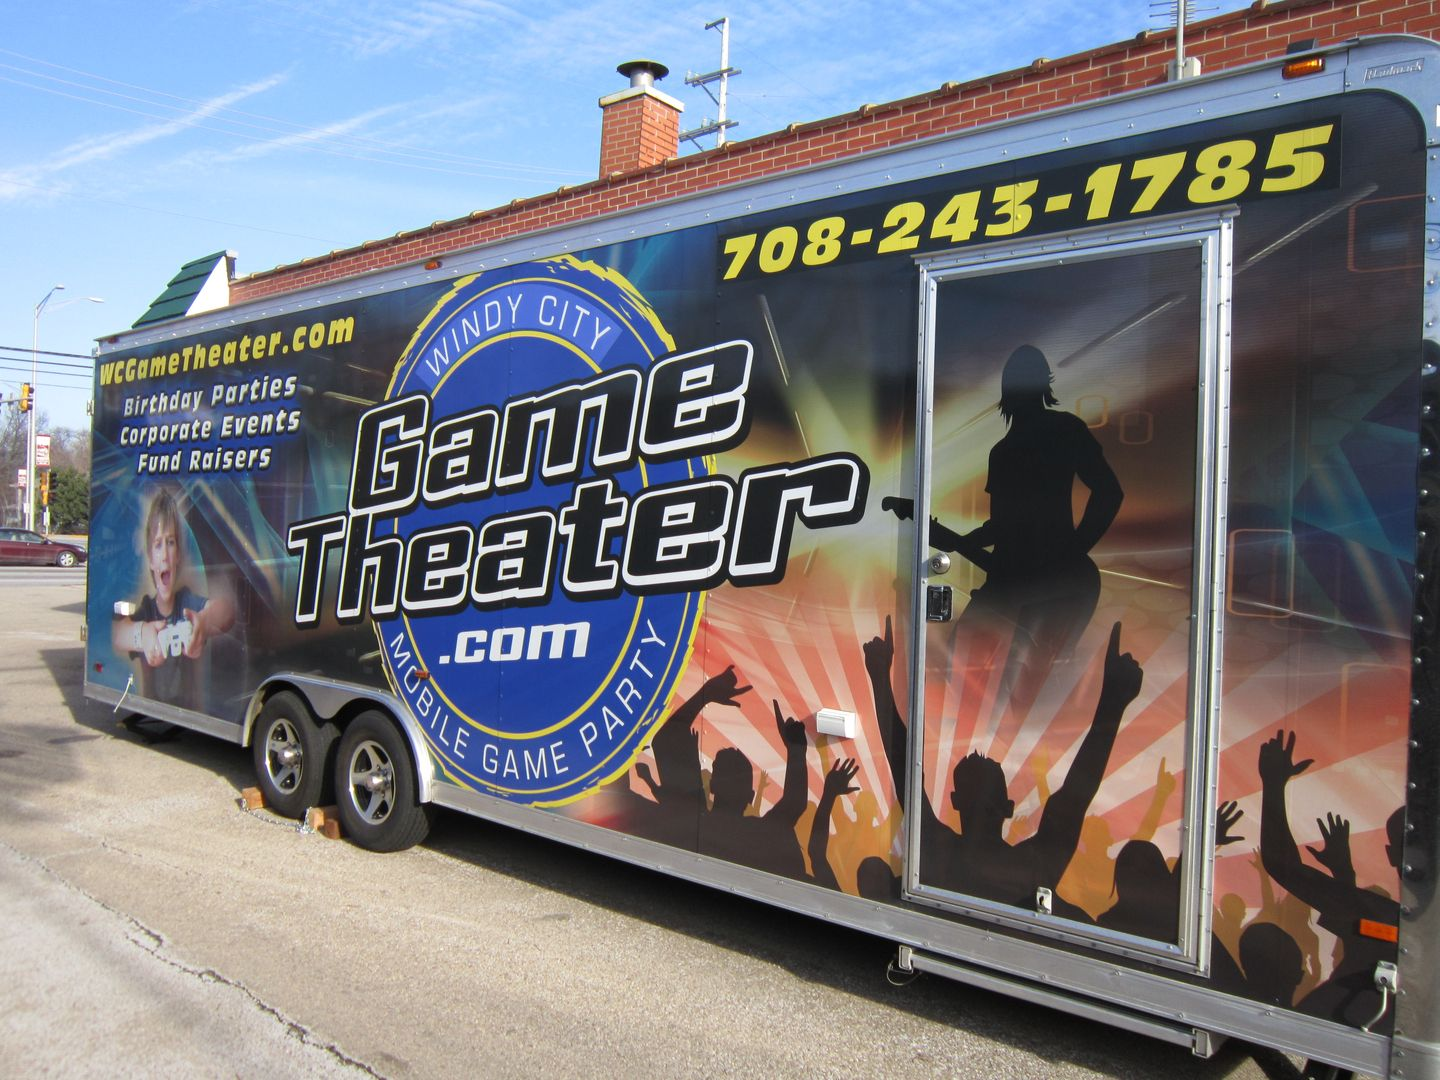 Windy city game theater video game truck kids birthday party birthday party places